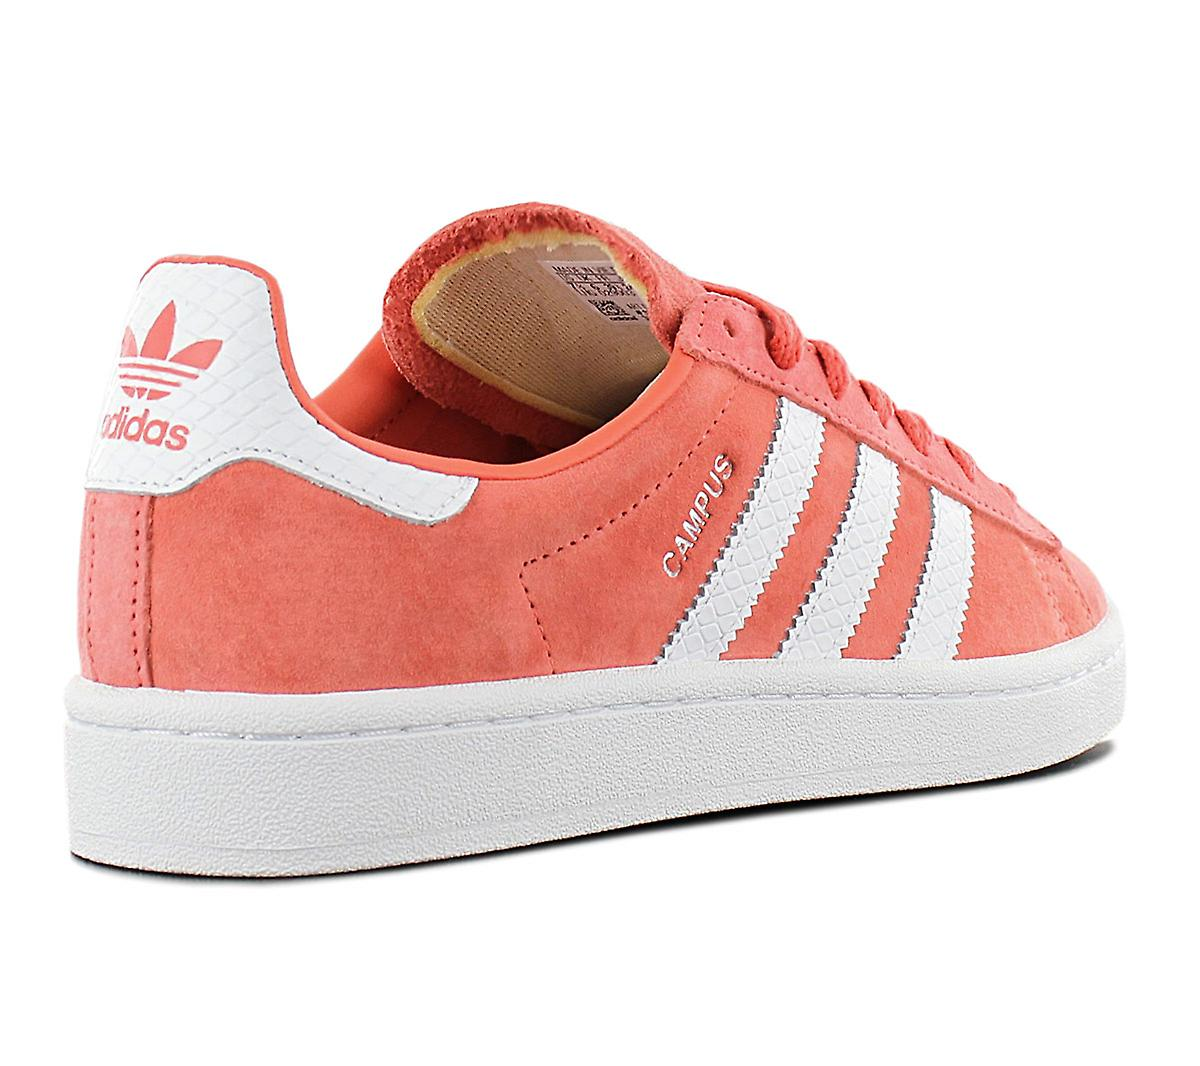 adidas Campus W CQ2099 Women's Shoes Red Sneakers Sports Shoes